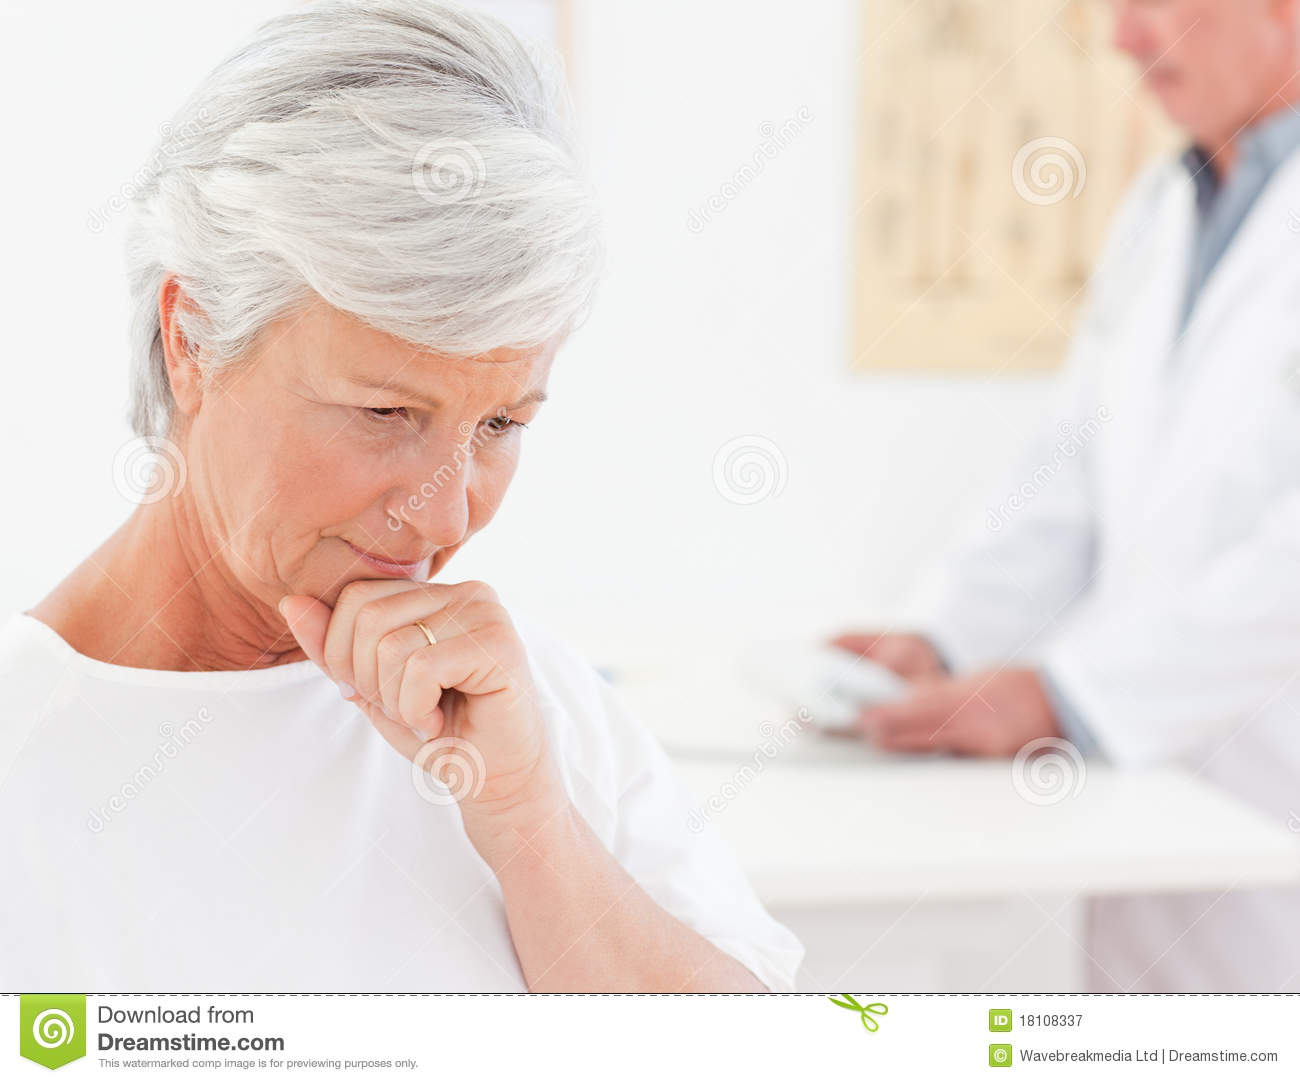 Sick Patient Pic : Sick Patient With Her Doctor Royalty Free Stock Photography - Image ...